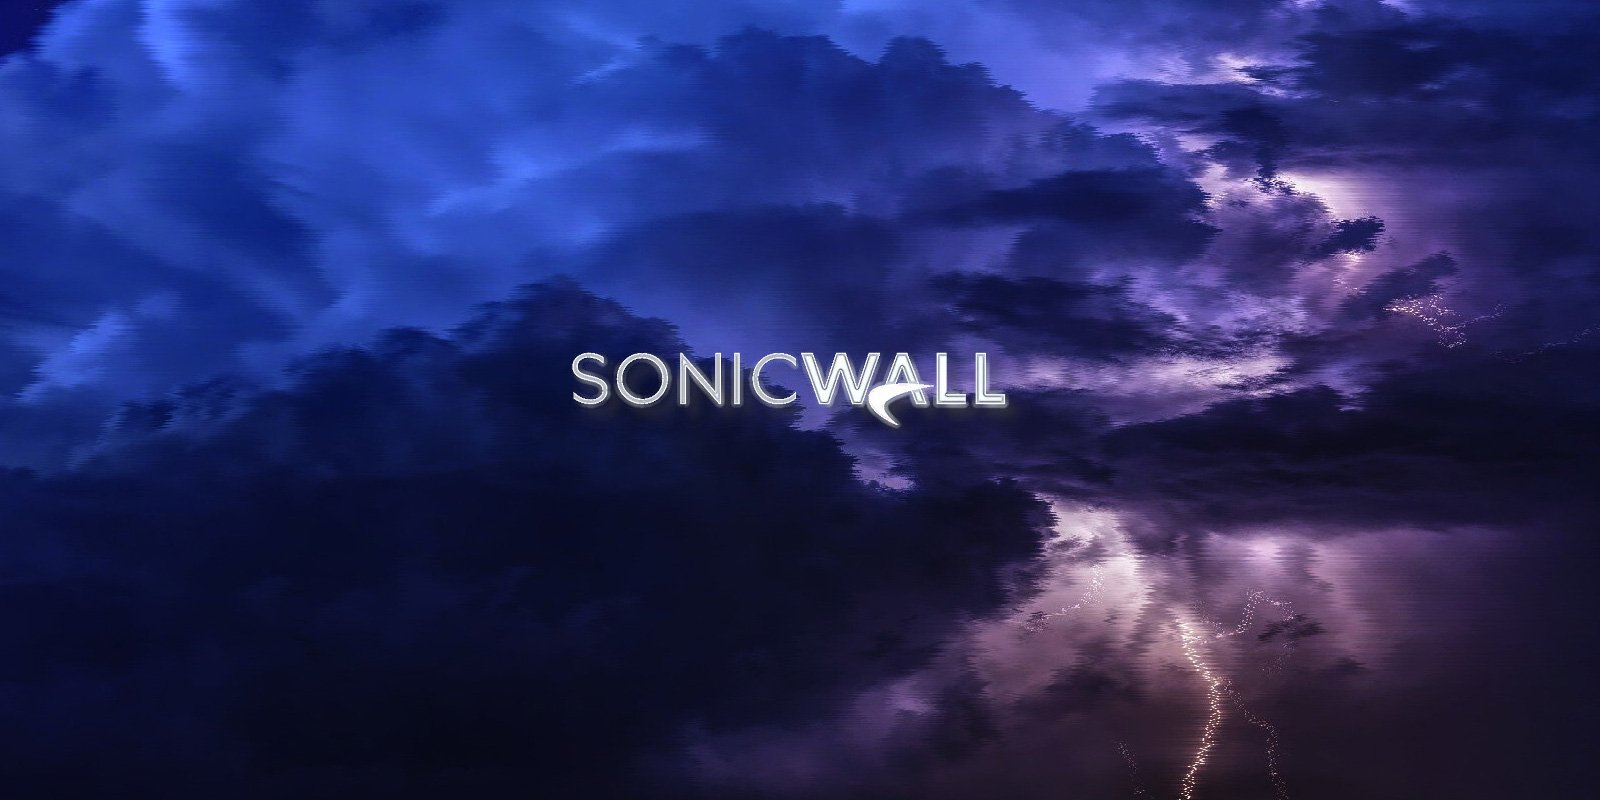 SonicWall firewall maker hacked using zero-day in its VPN device